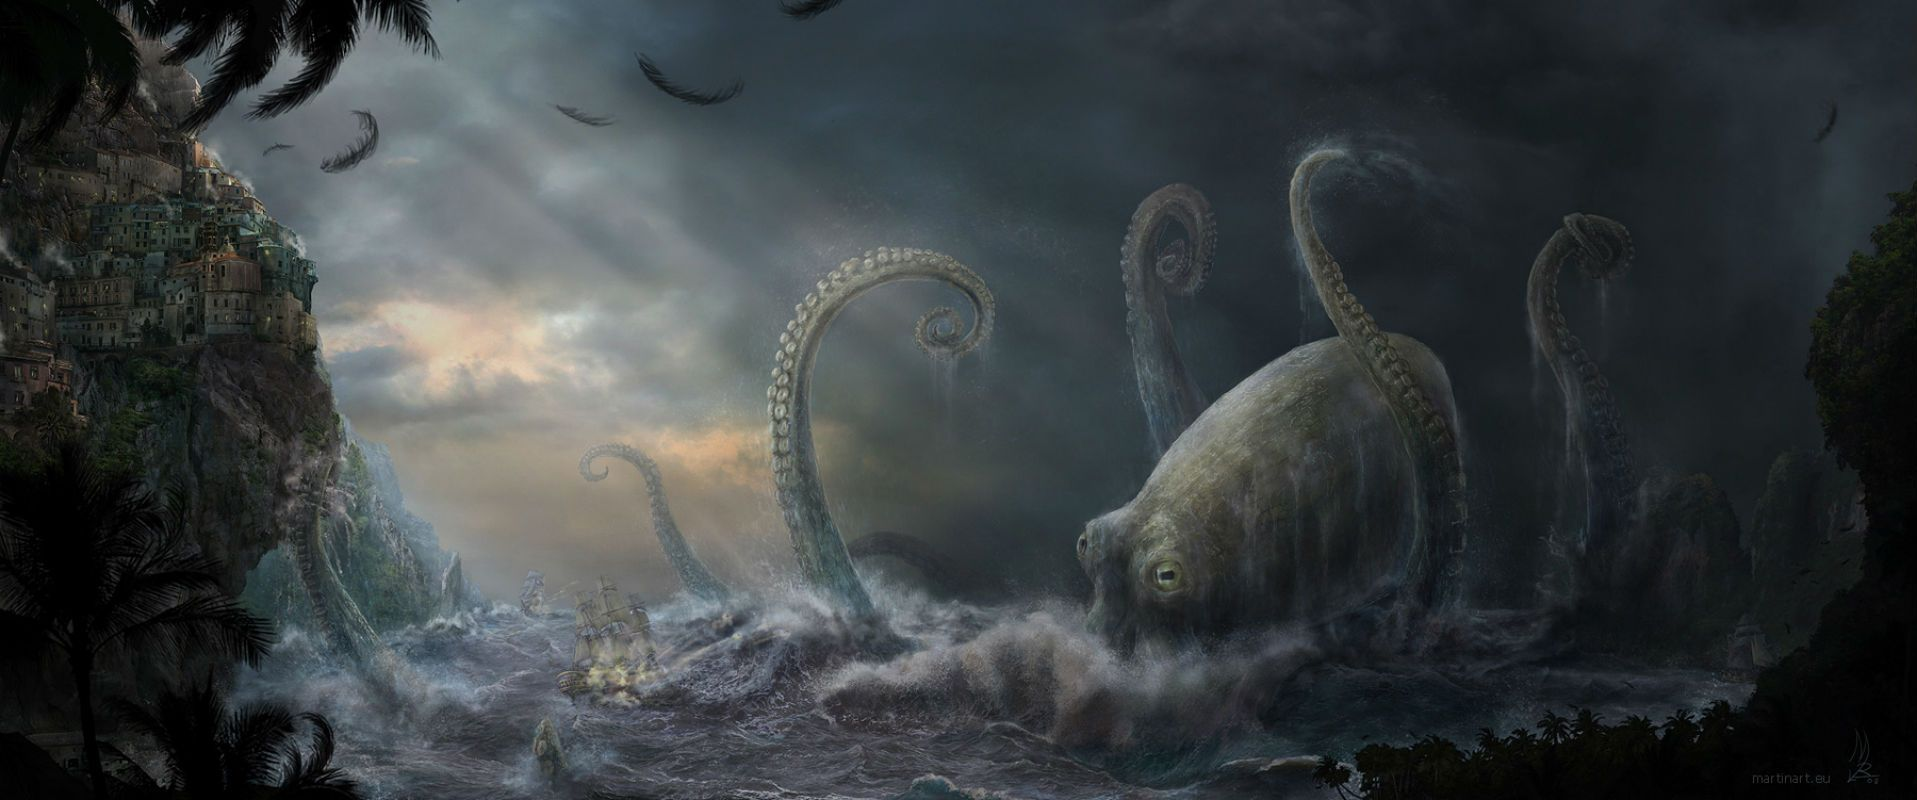 Call Of Cthulhu HD Wallpapers  Backgrounds  Wallpaper  1917x800